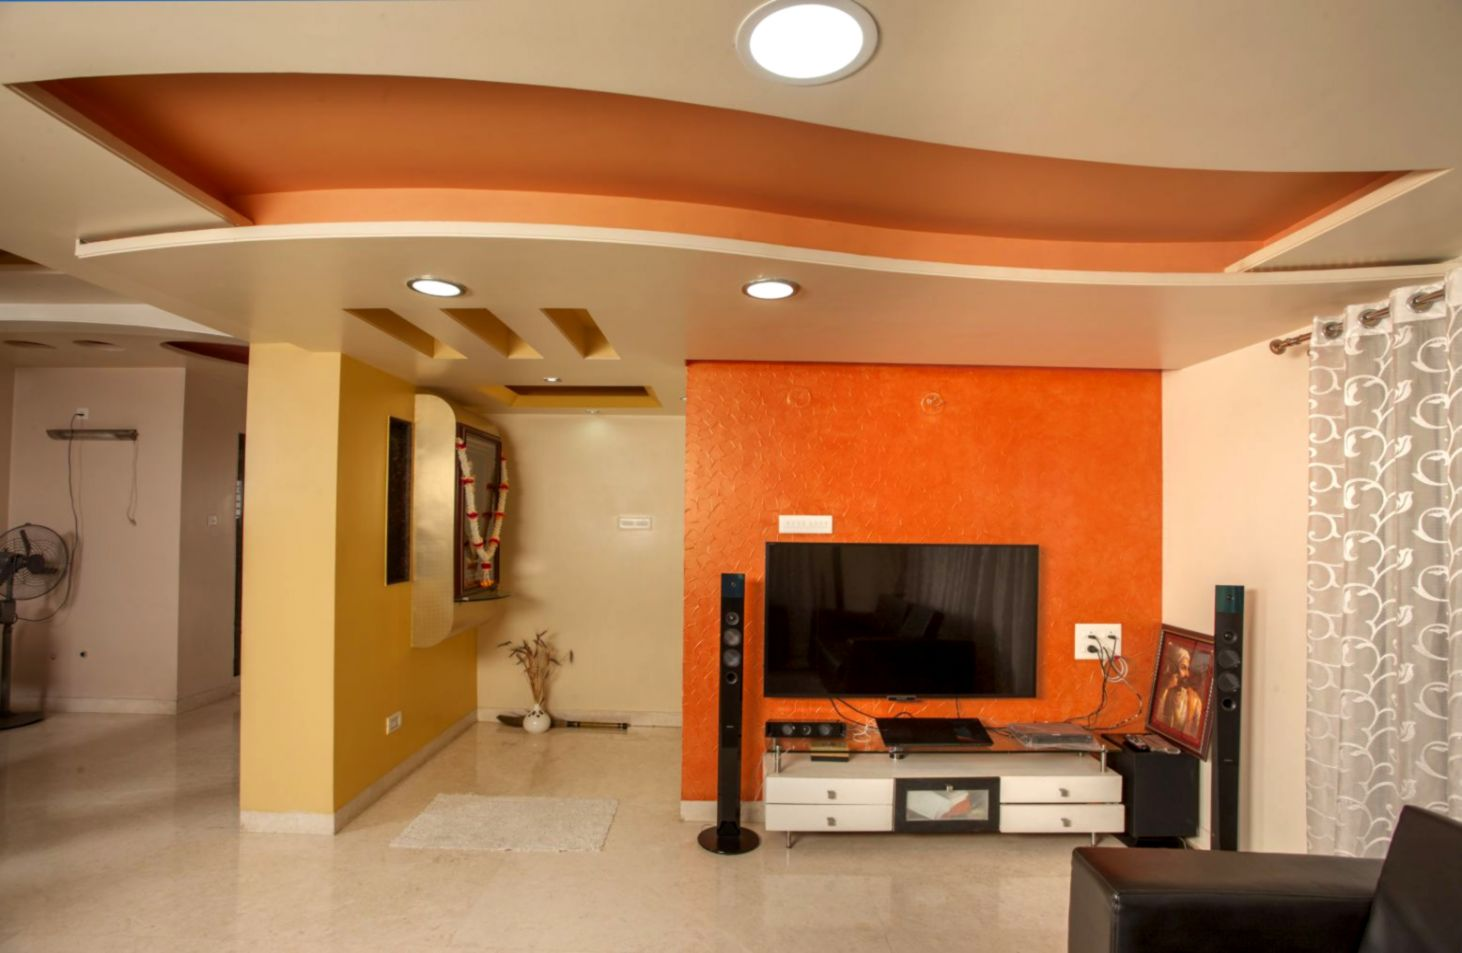 51+ Simple Interior Design Ideas for 2BHK Flat (Images ...